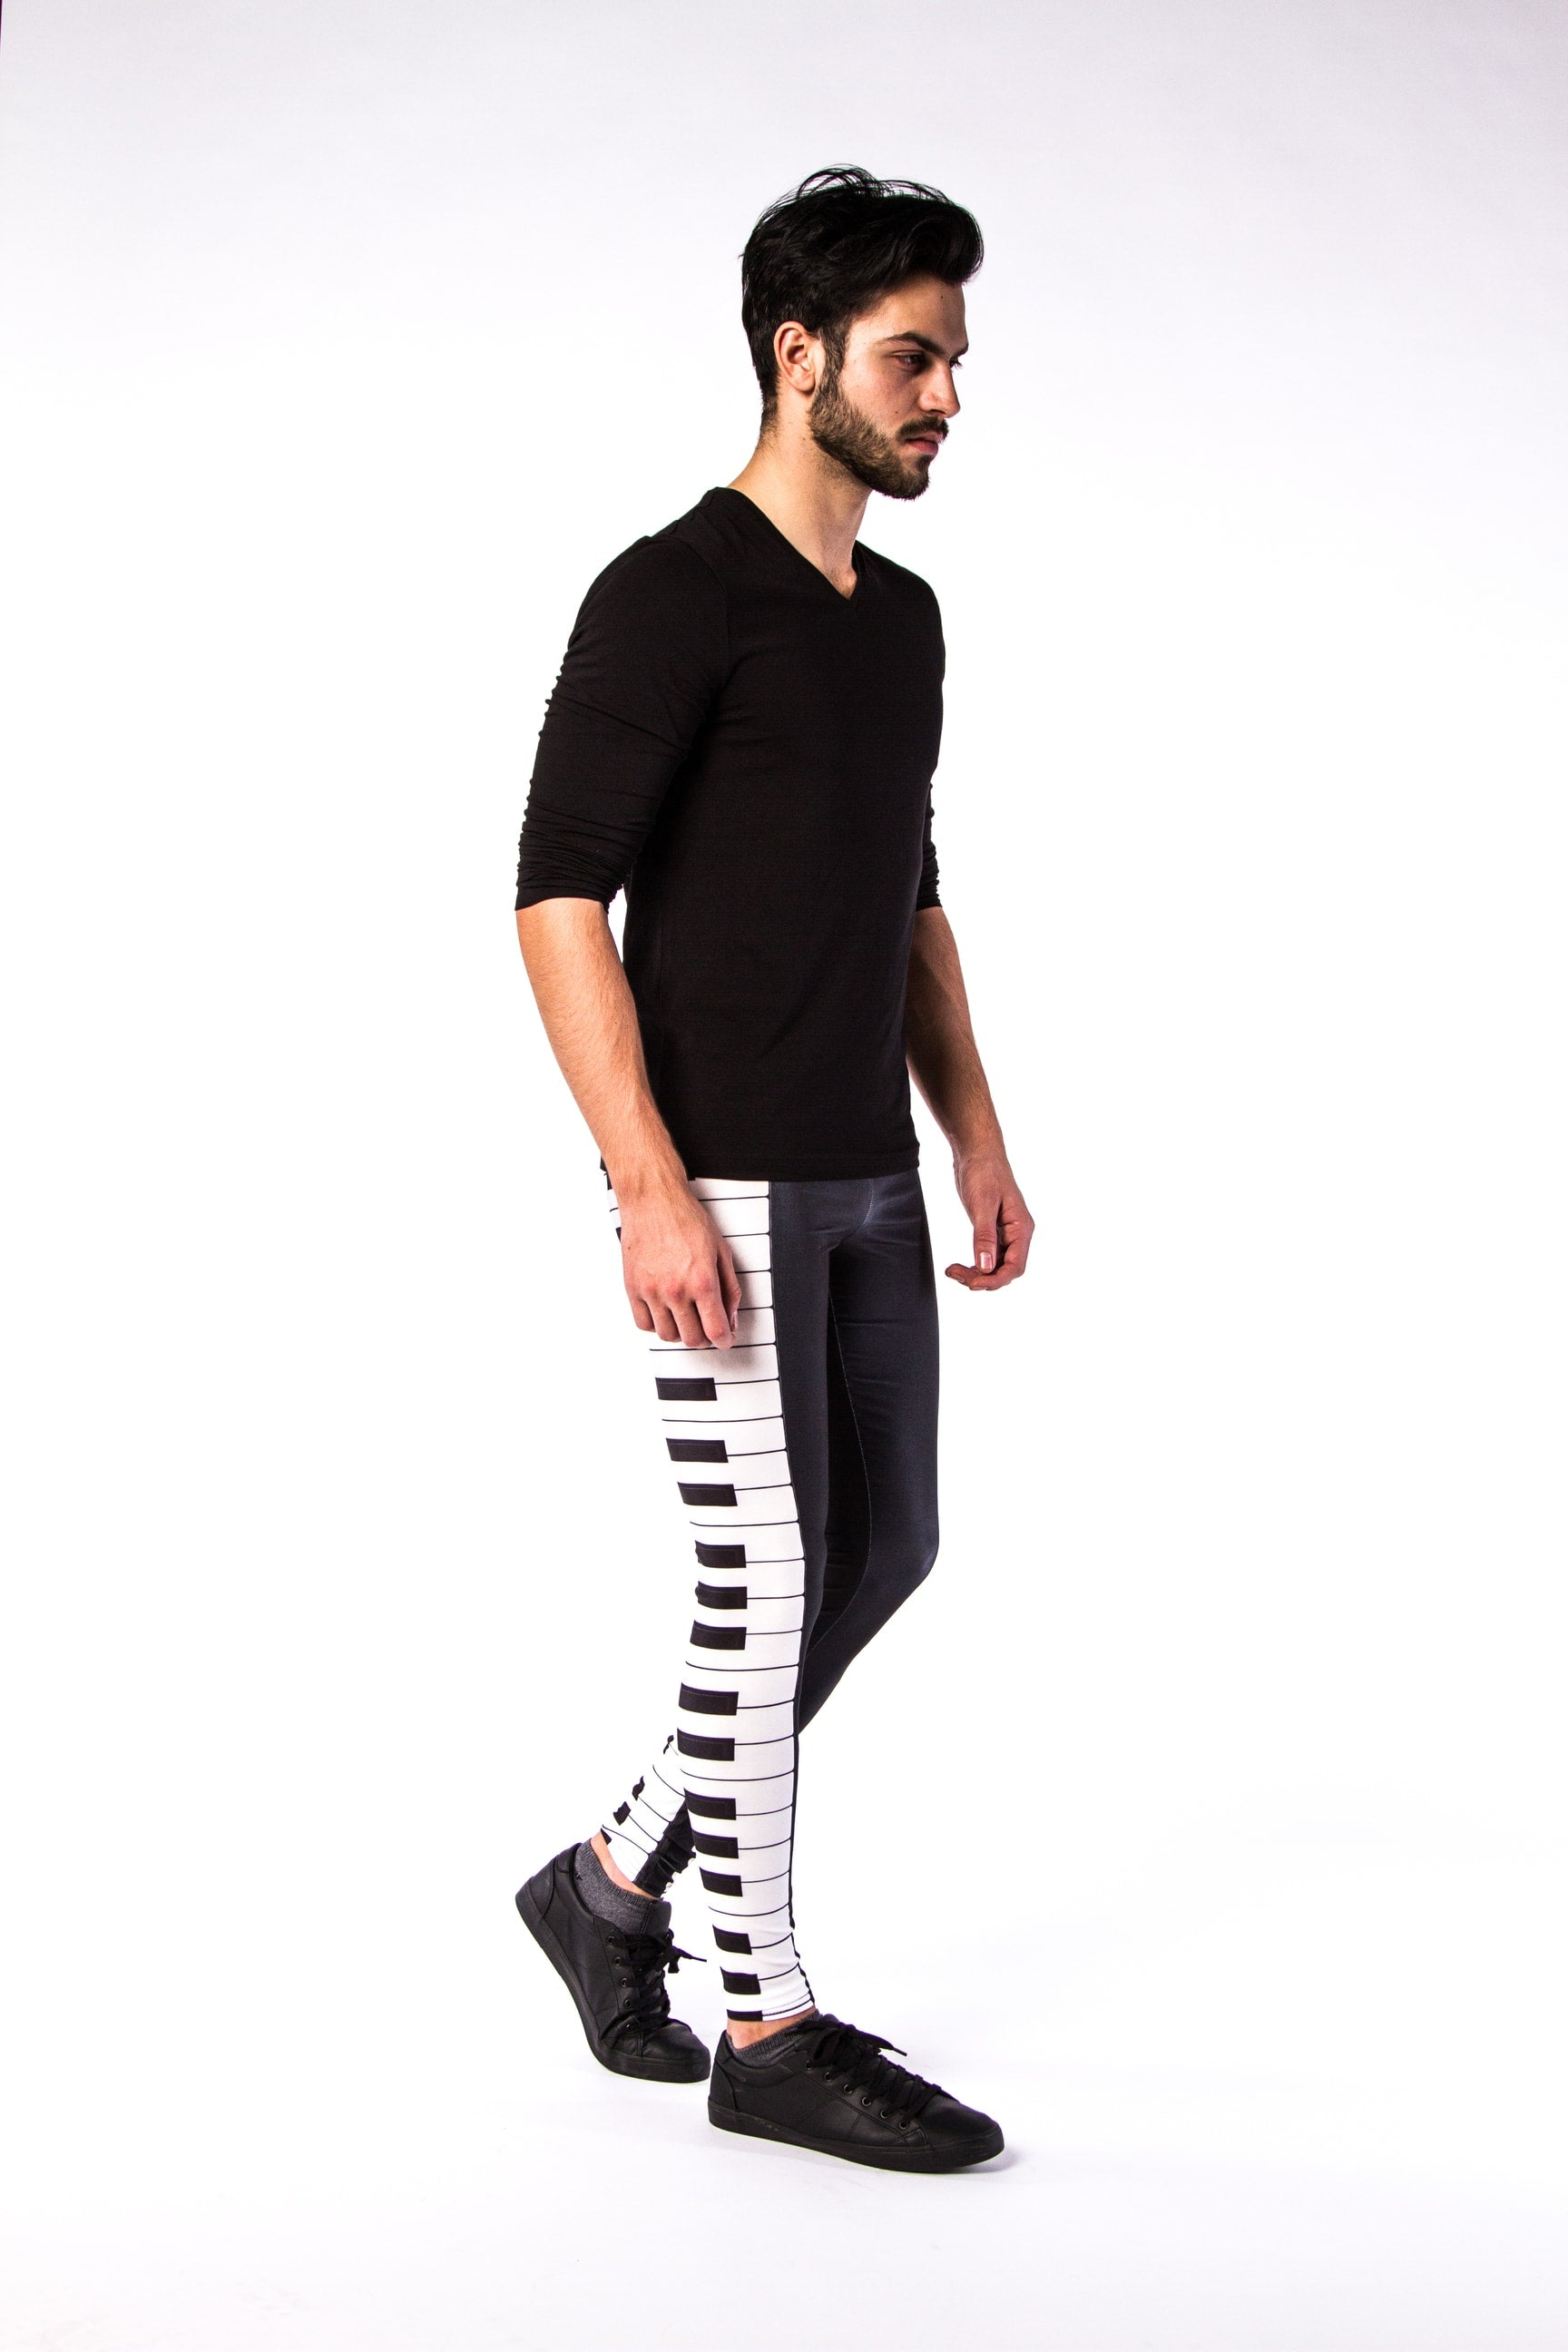 0c53117642632f Man posing in Kapow Meggings Black and White piano key men's leggings one  side view